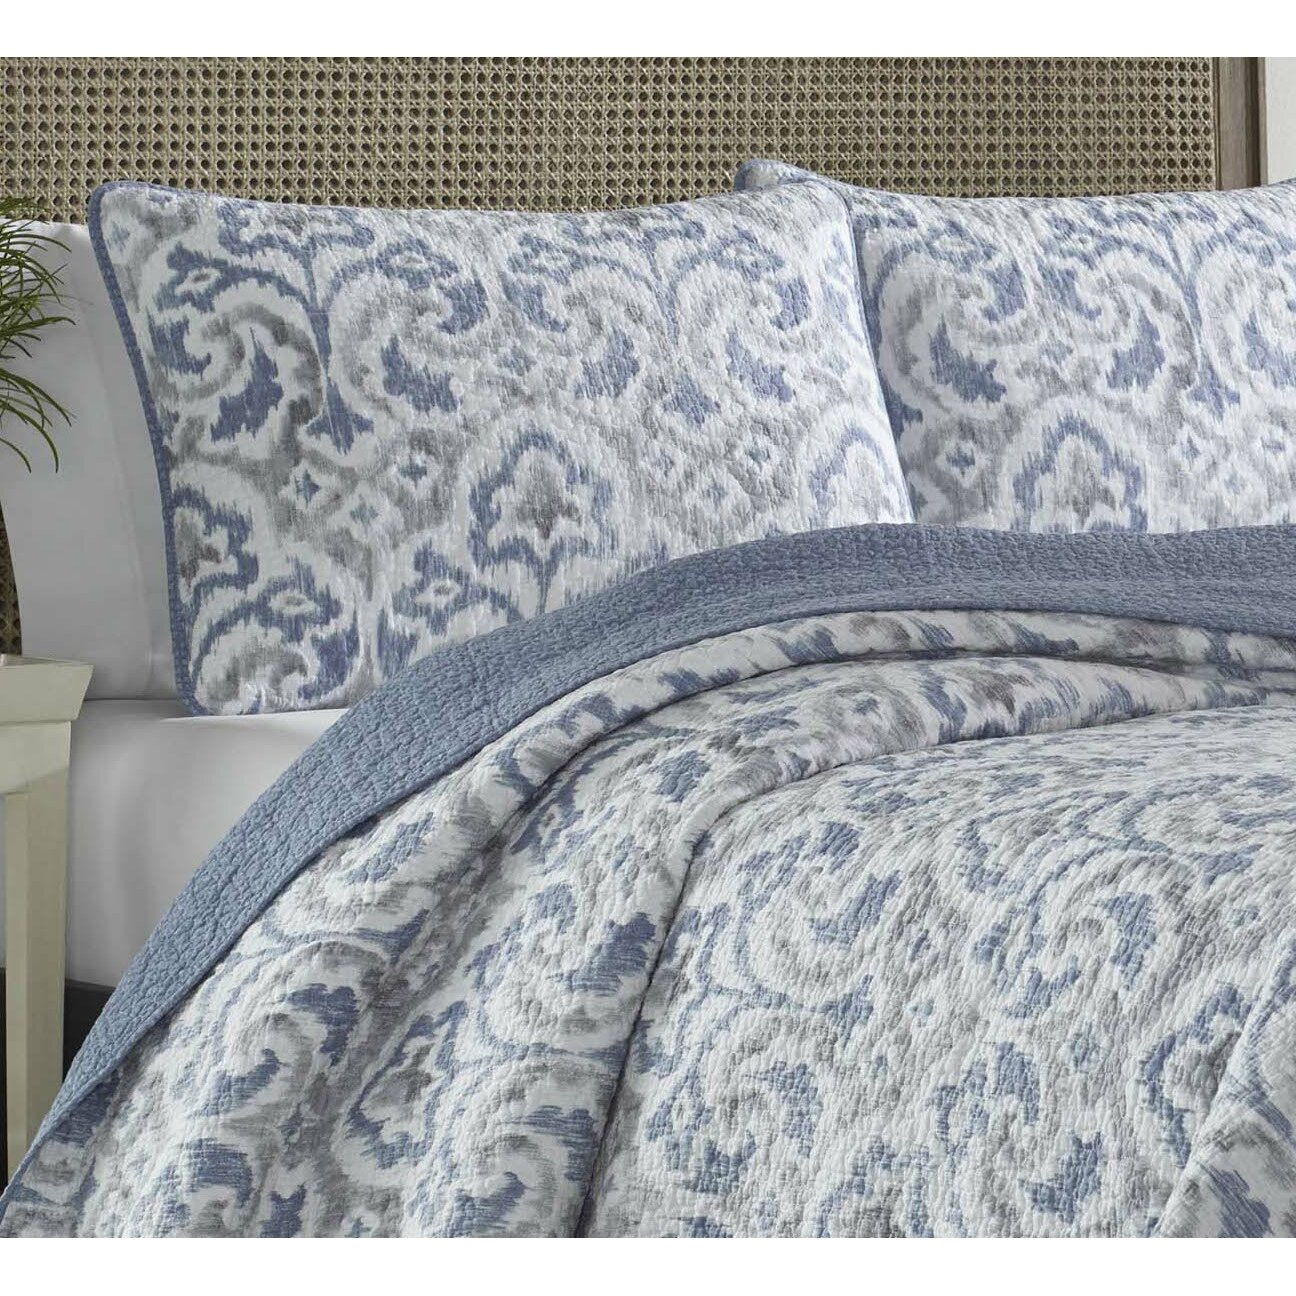 Tommy Bahama Bedding Cape Verde Reversible Quilt Set